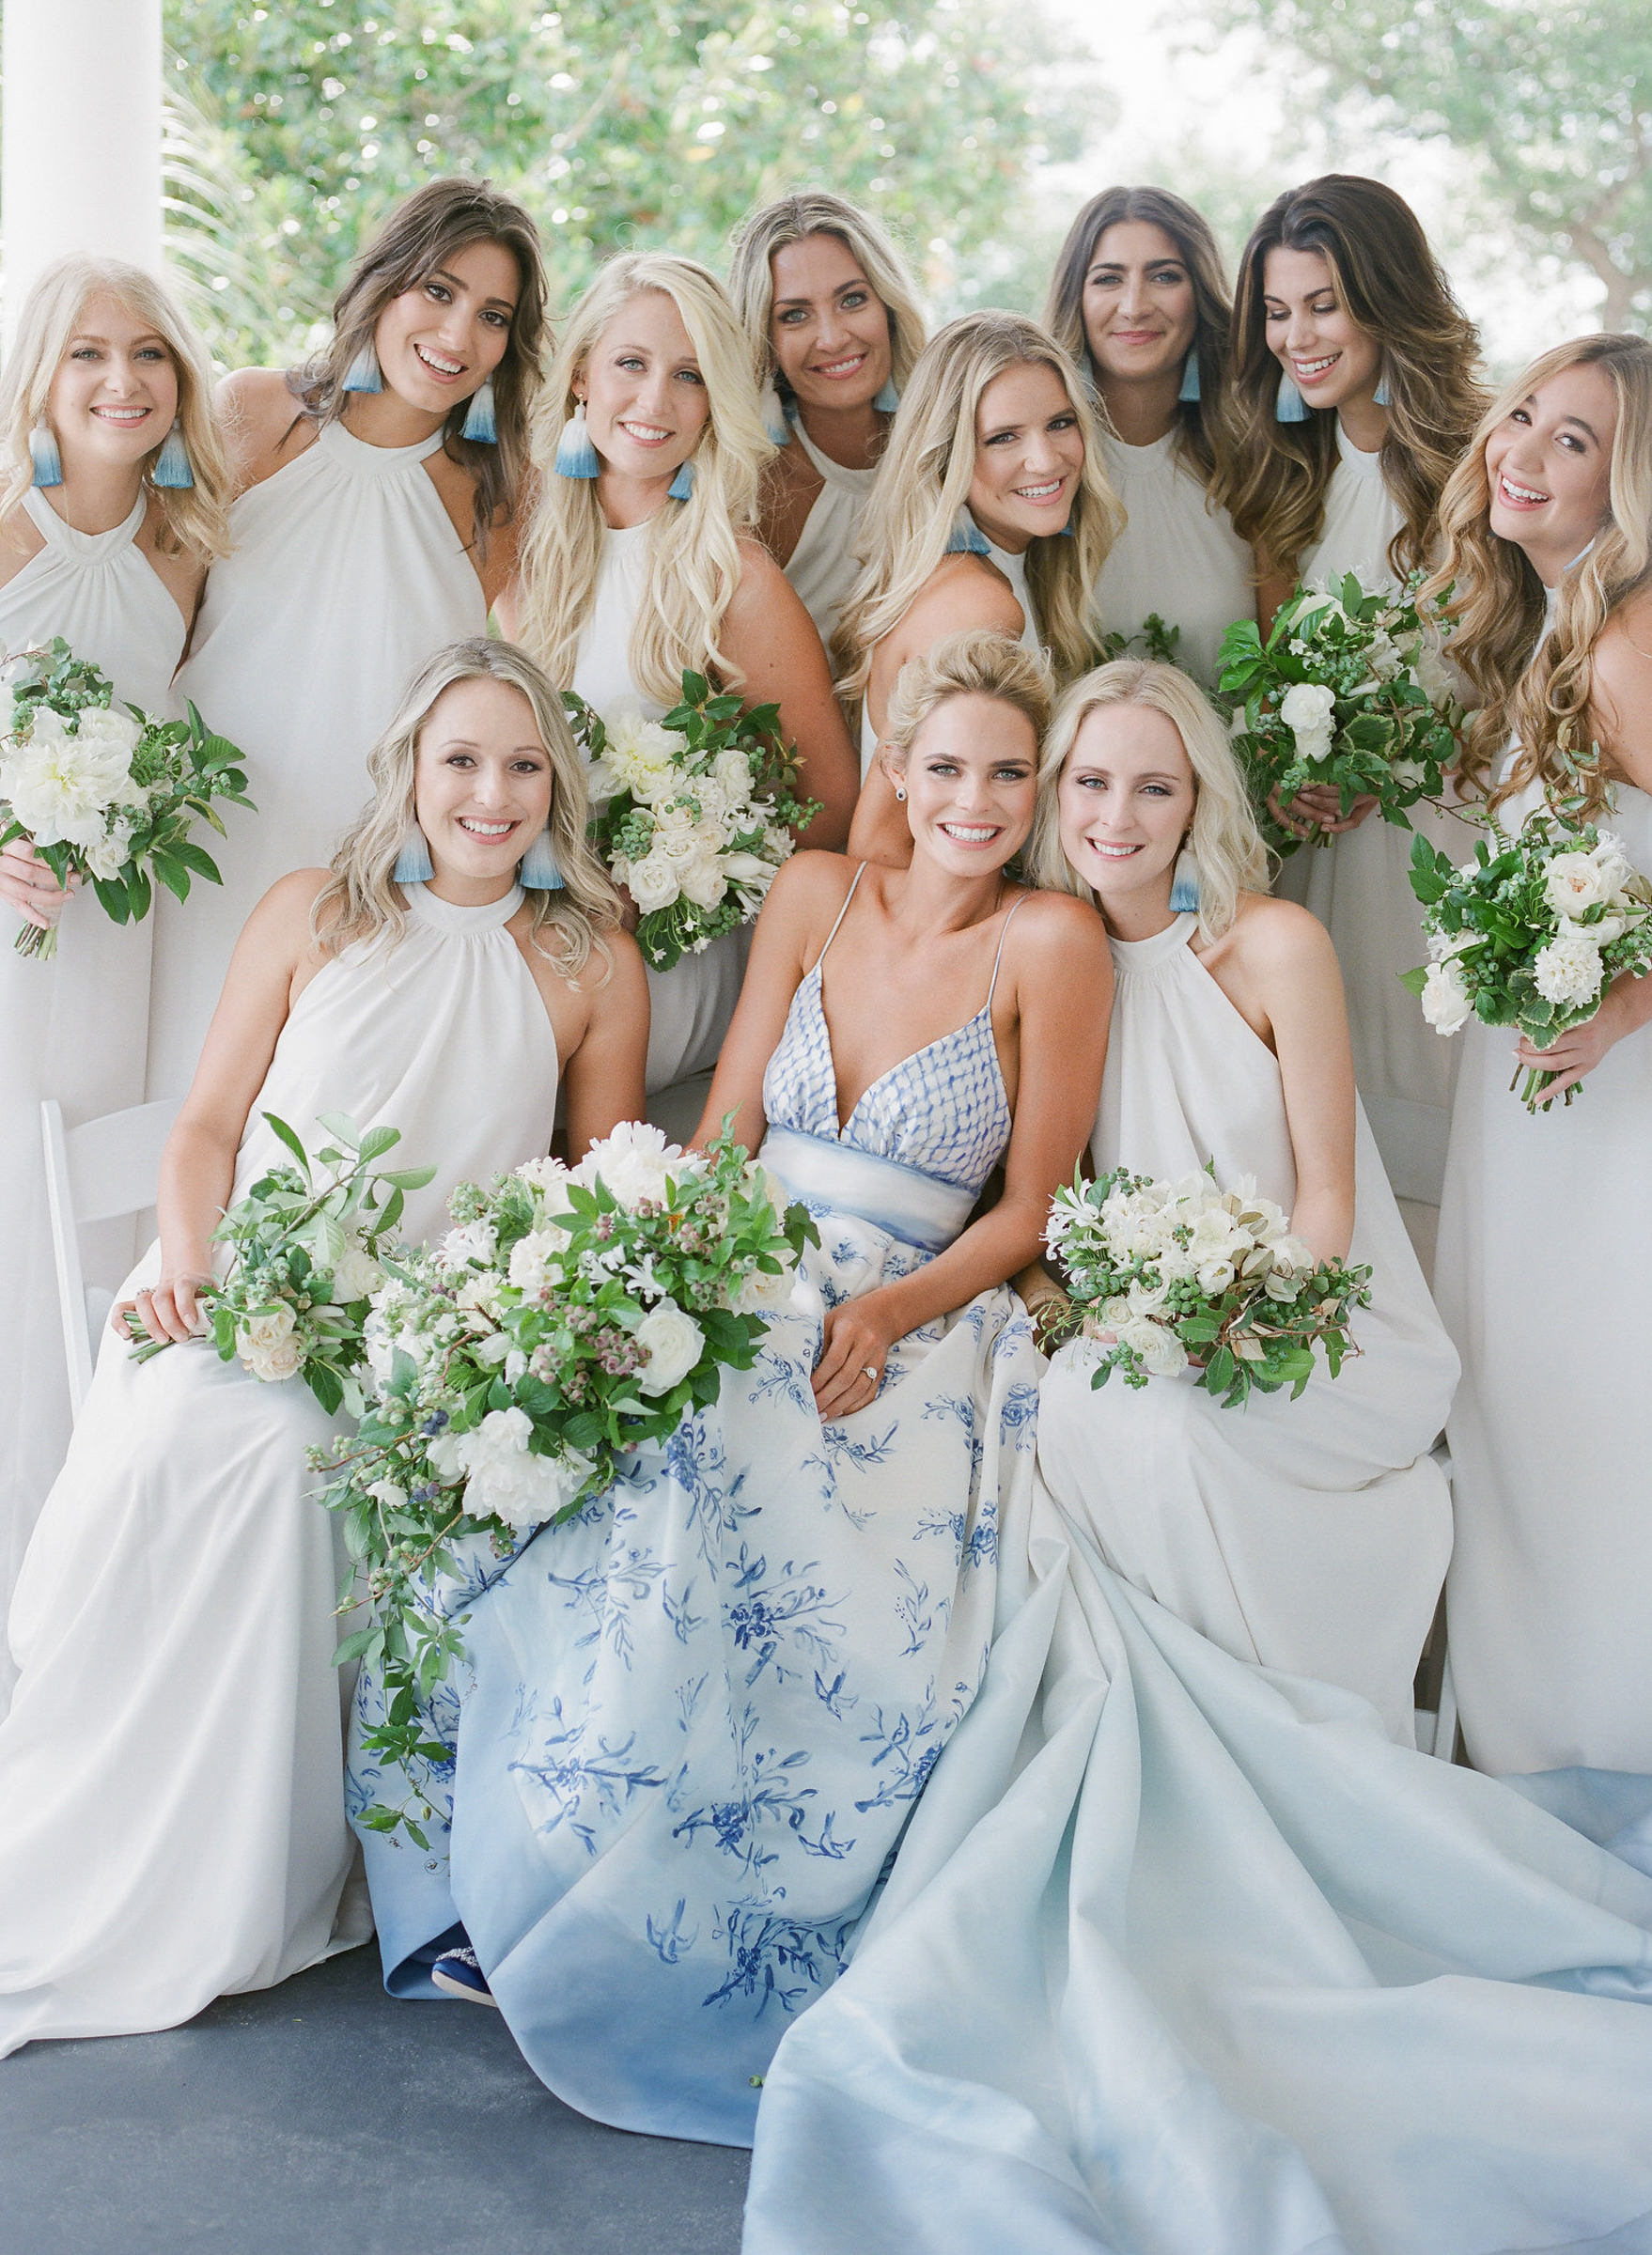 Bridal party in halter gowns and bride in strapless floral dress - photo by Corbin Gurkin